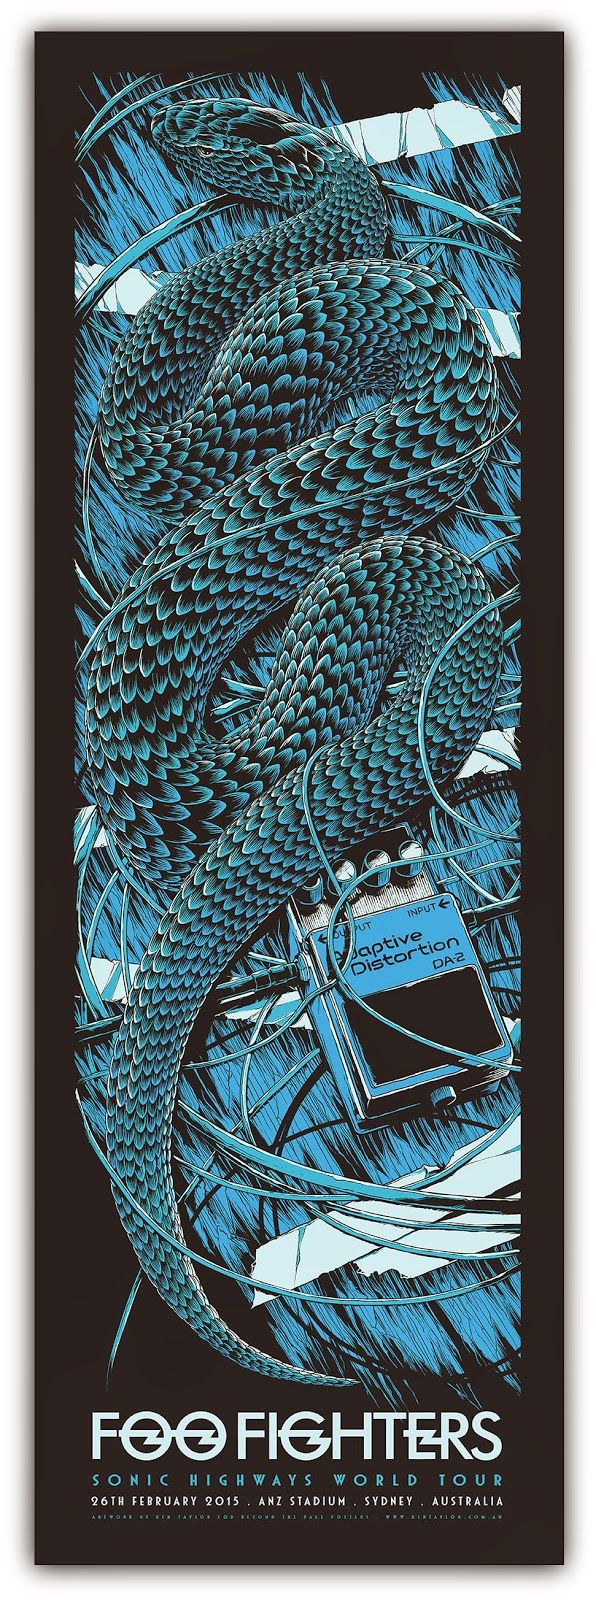 Ken Taylor Foo Fighters Australia Tour Posters On Sale